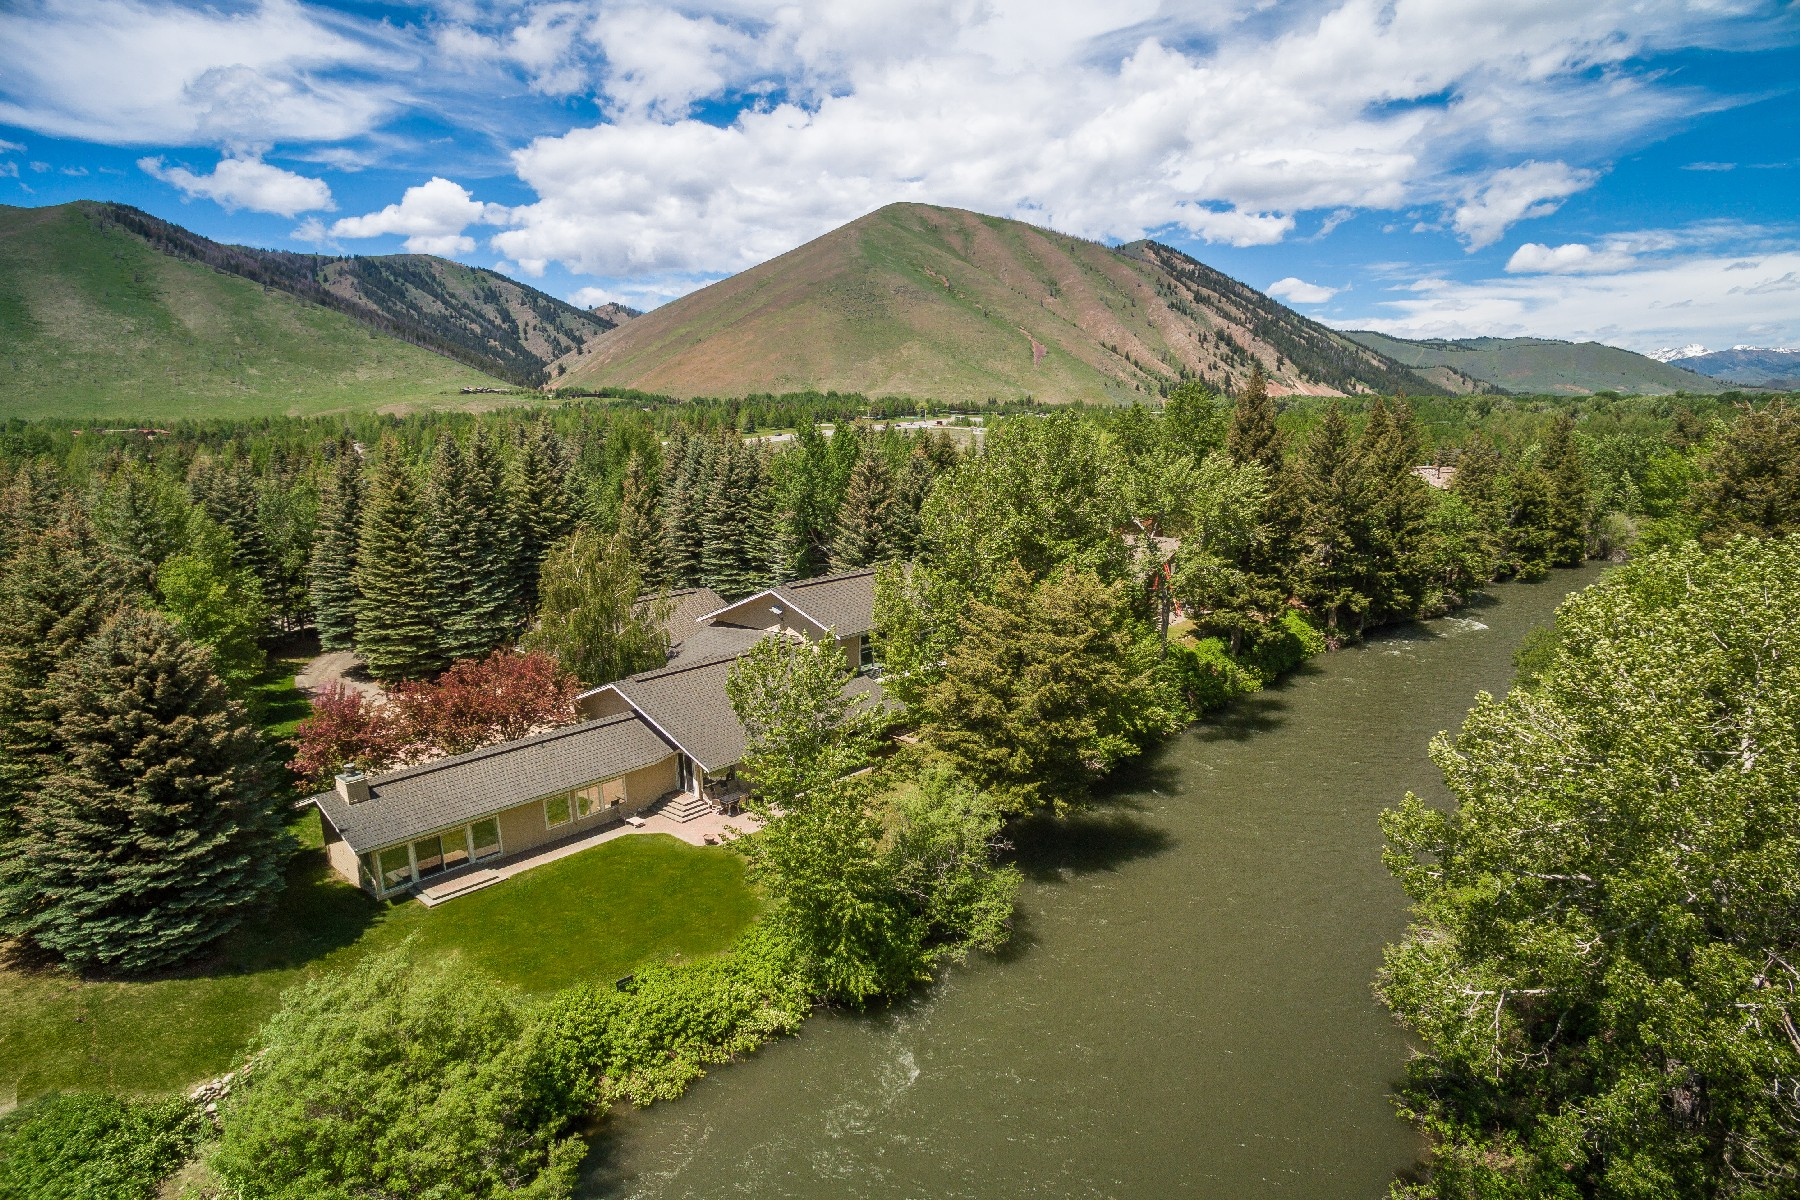 Casa Unifamiliar por un Venta en Twenty feet from the water 141 Audubon Place, Mid Valley, Ketchum, Idaho, 83340 Estados Unidos